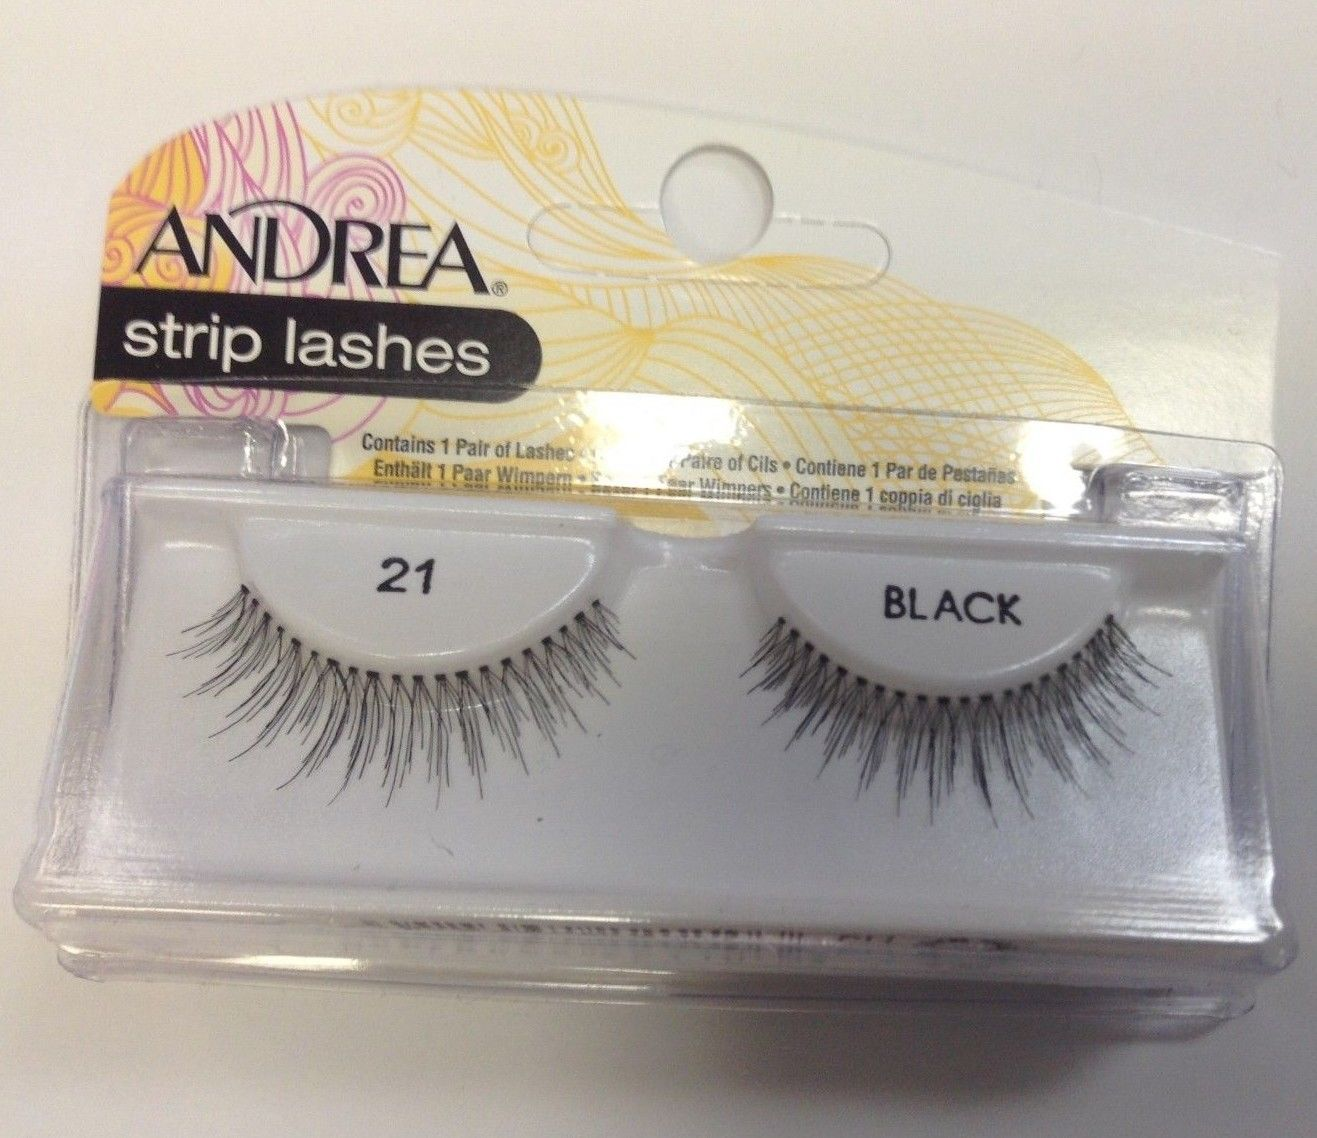 Primary image for Andrea's Strip Lashes Fashion Eye Lash Style 21 Black - (Pack of 6)